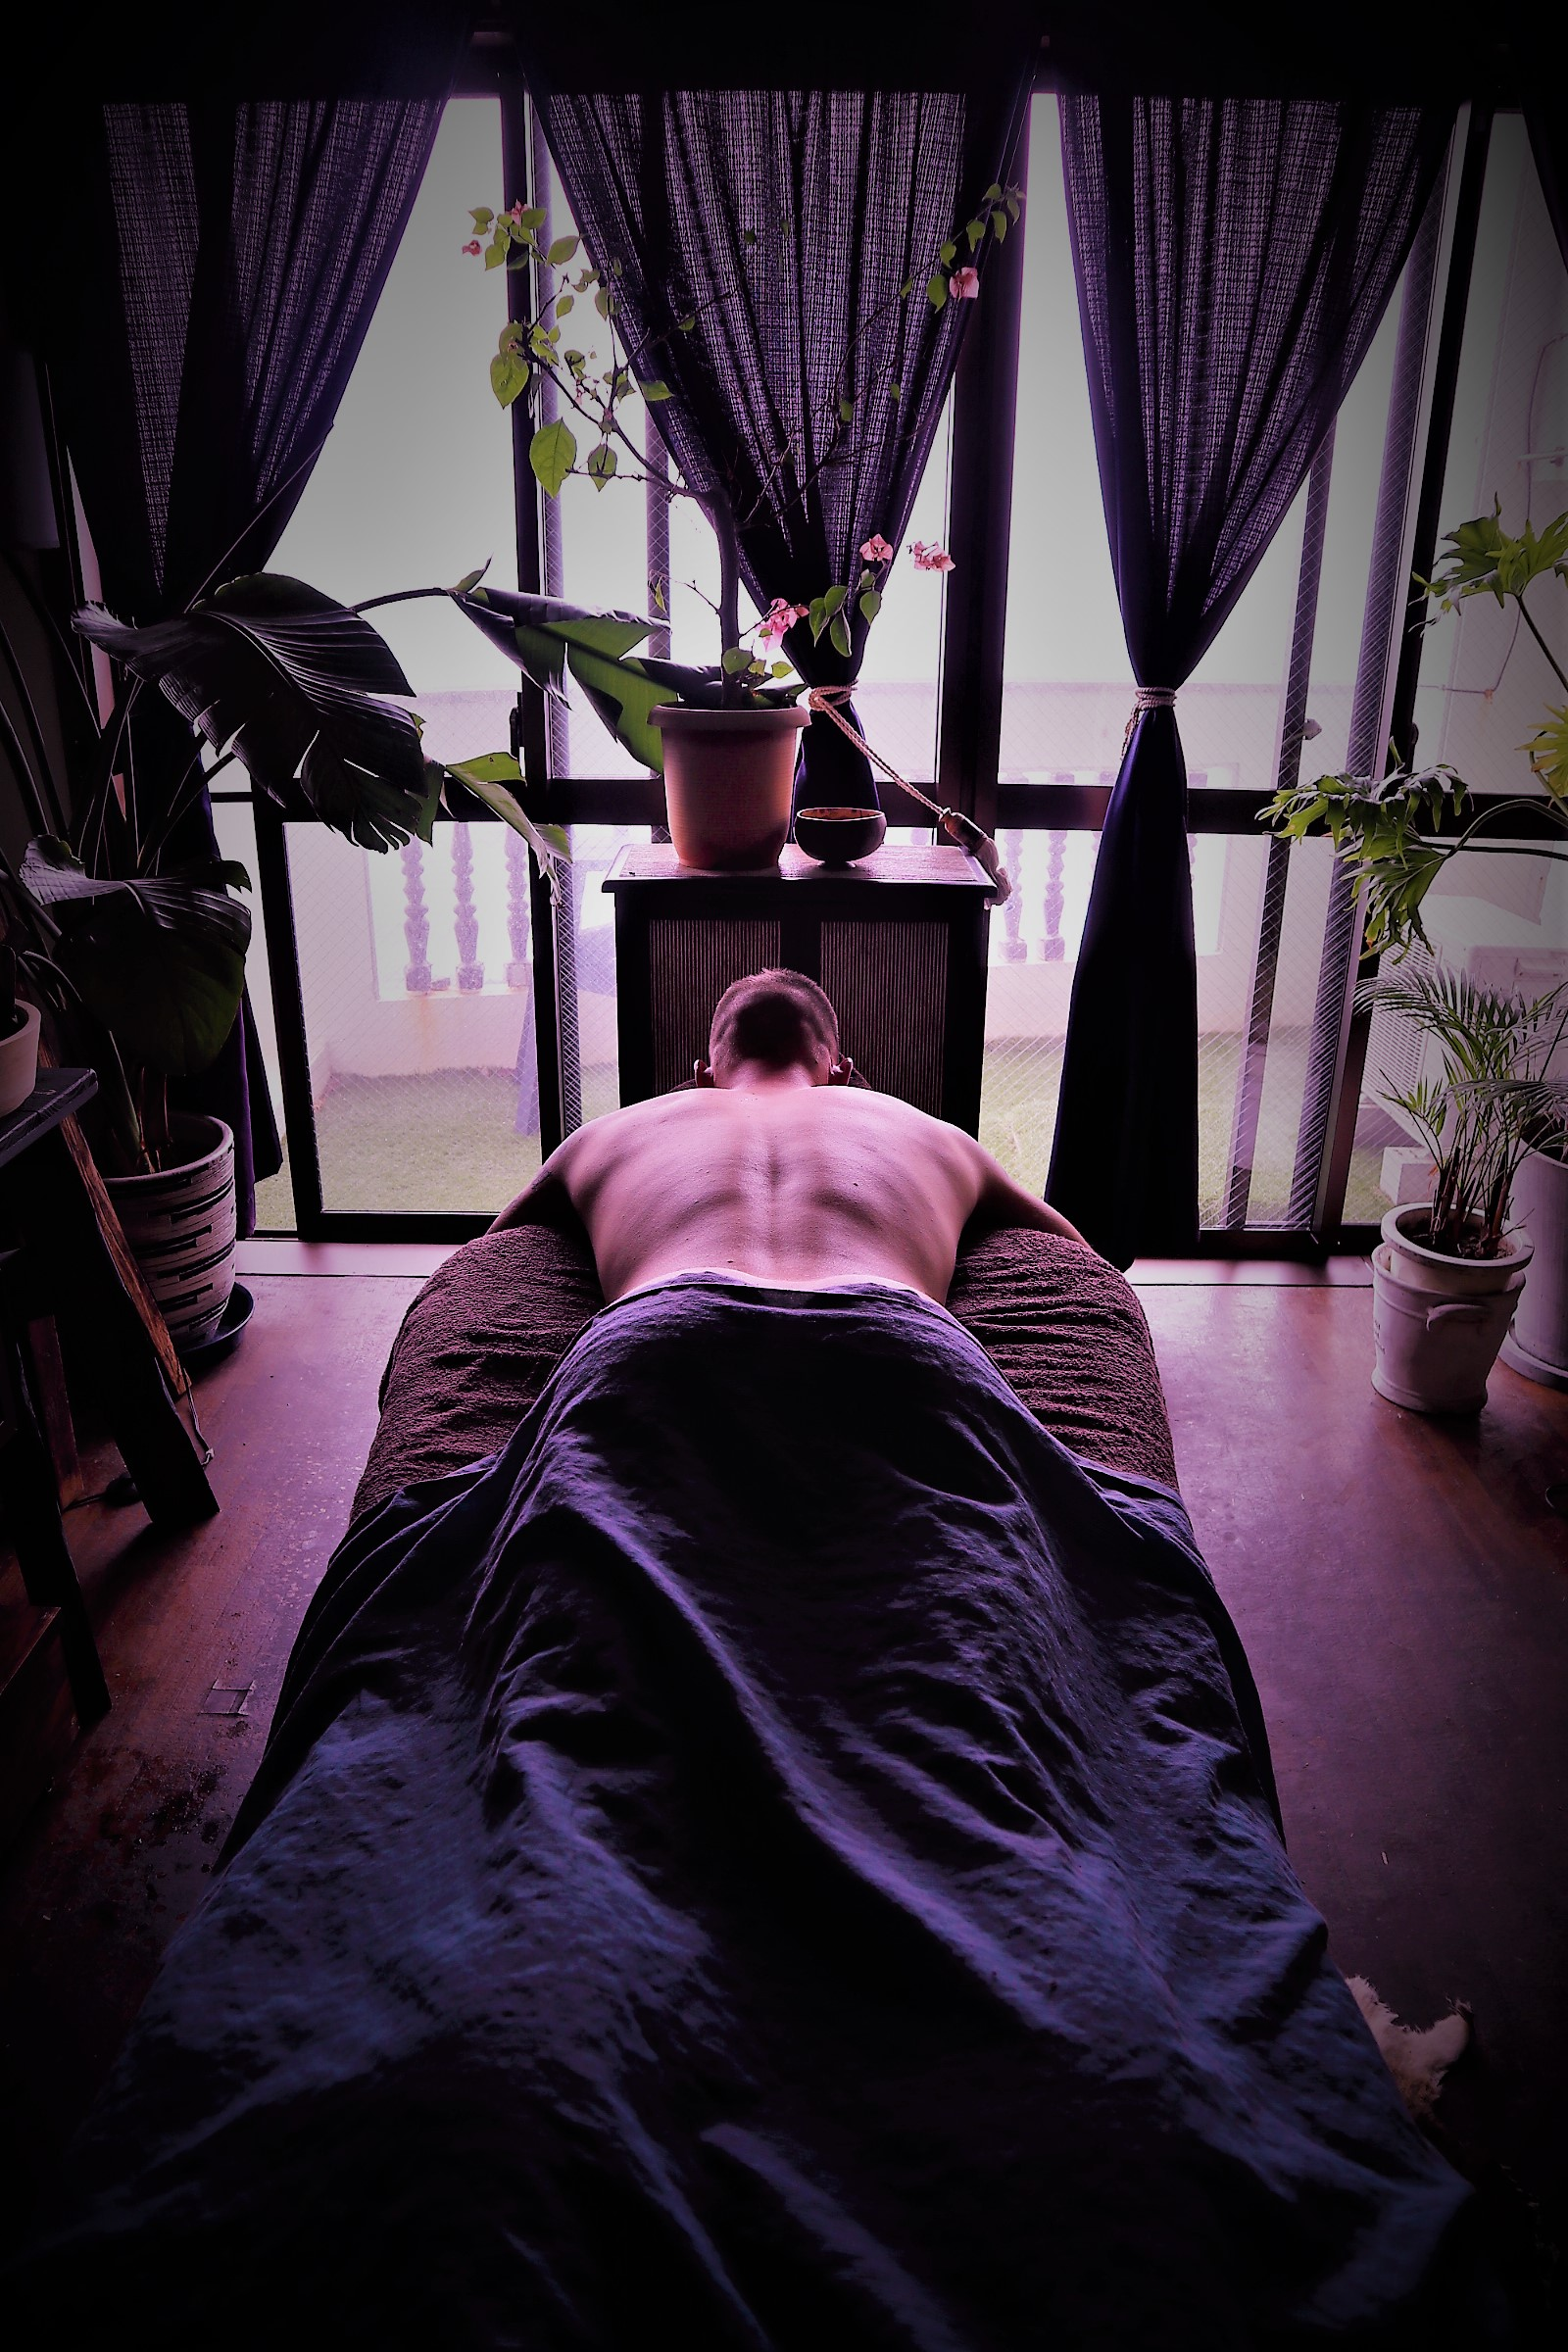 OKINAWA MASSAGE